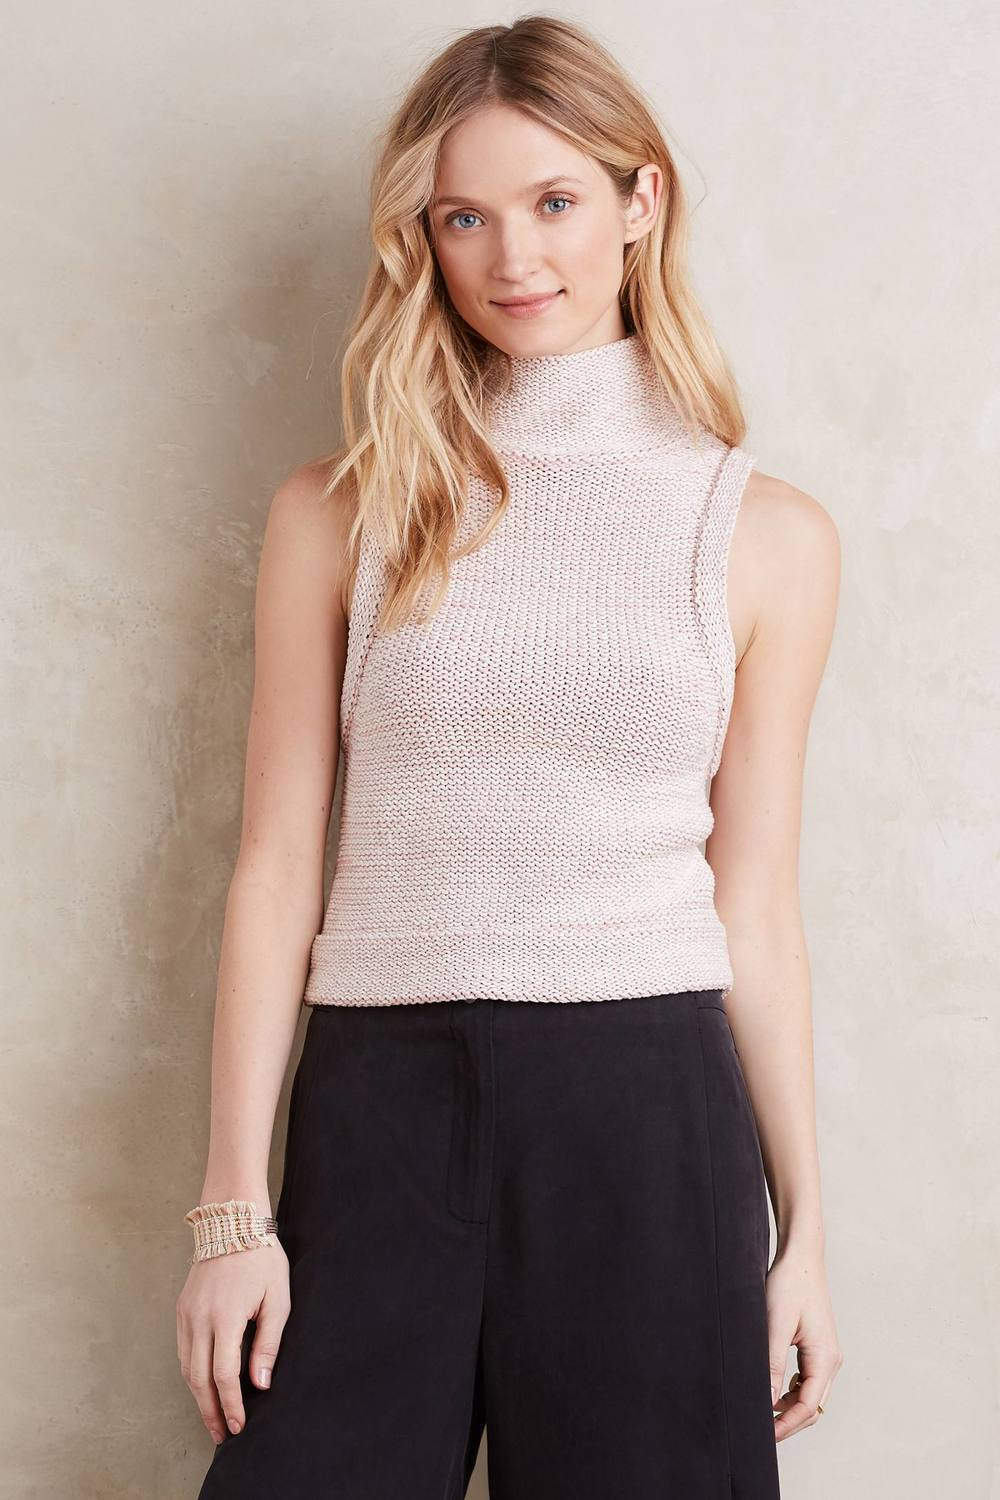 Turtleneck Midi Tank. Anthropologie. $89.